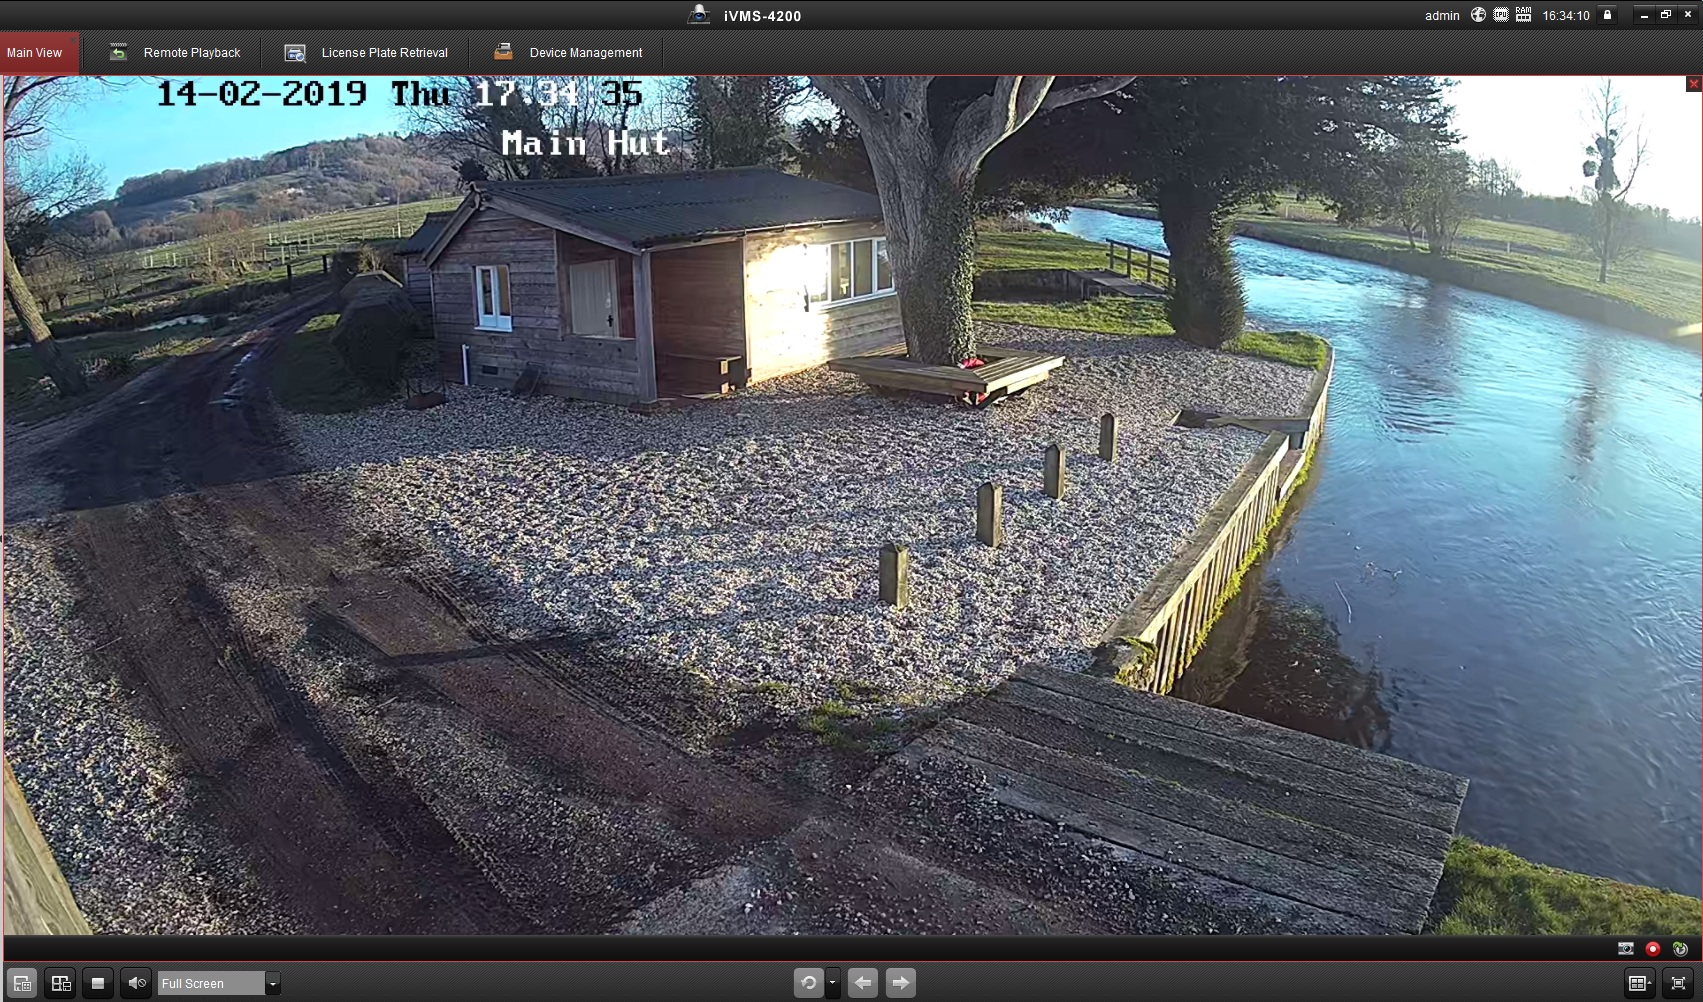 This CCTV Camera is powered by Solar Panels. Providing clear HD Images for the user.